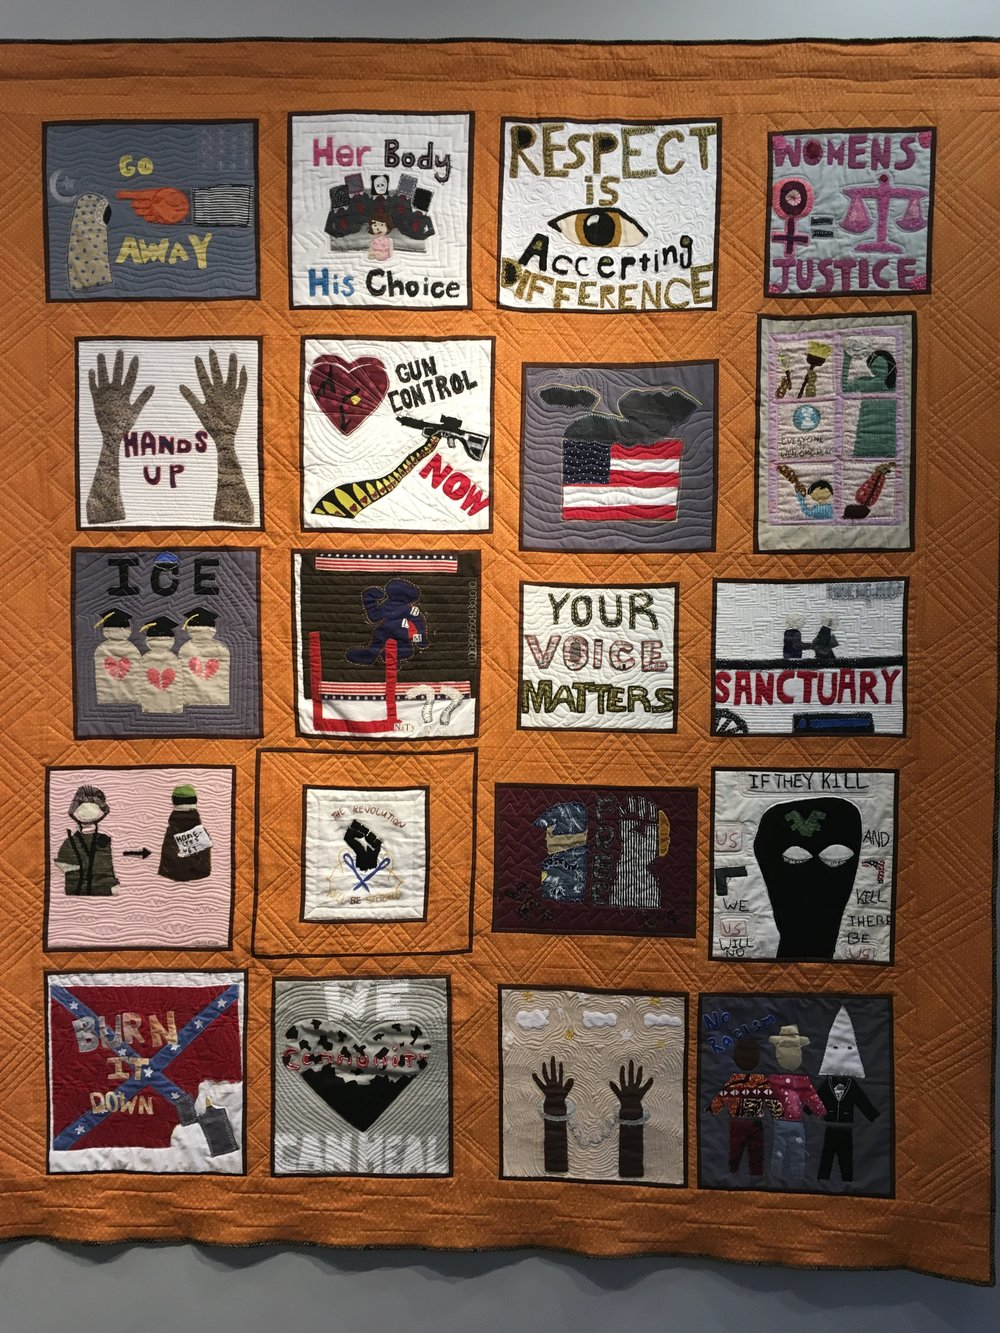 Woke Voices: Community Quilt by Youth at SJSA Workshops in Boston, Baltimore, and the Bay Area. Image: Namita Paul  In addition, there was some amazing work by  Social Justice Sewing Academy  workshops for high school and college students. Calls for gun control, women's rights, immigration justice, and fighting racism reverberate through the quilts on display.